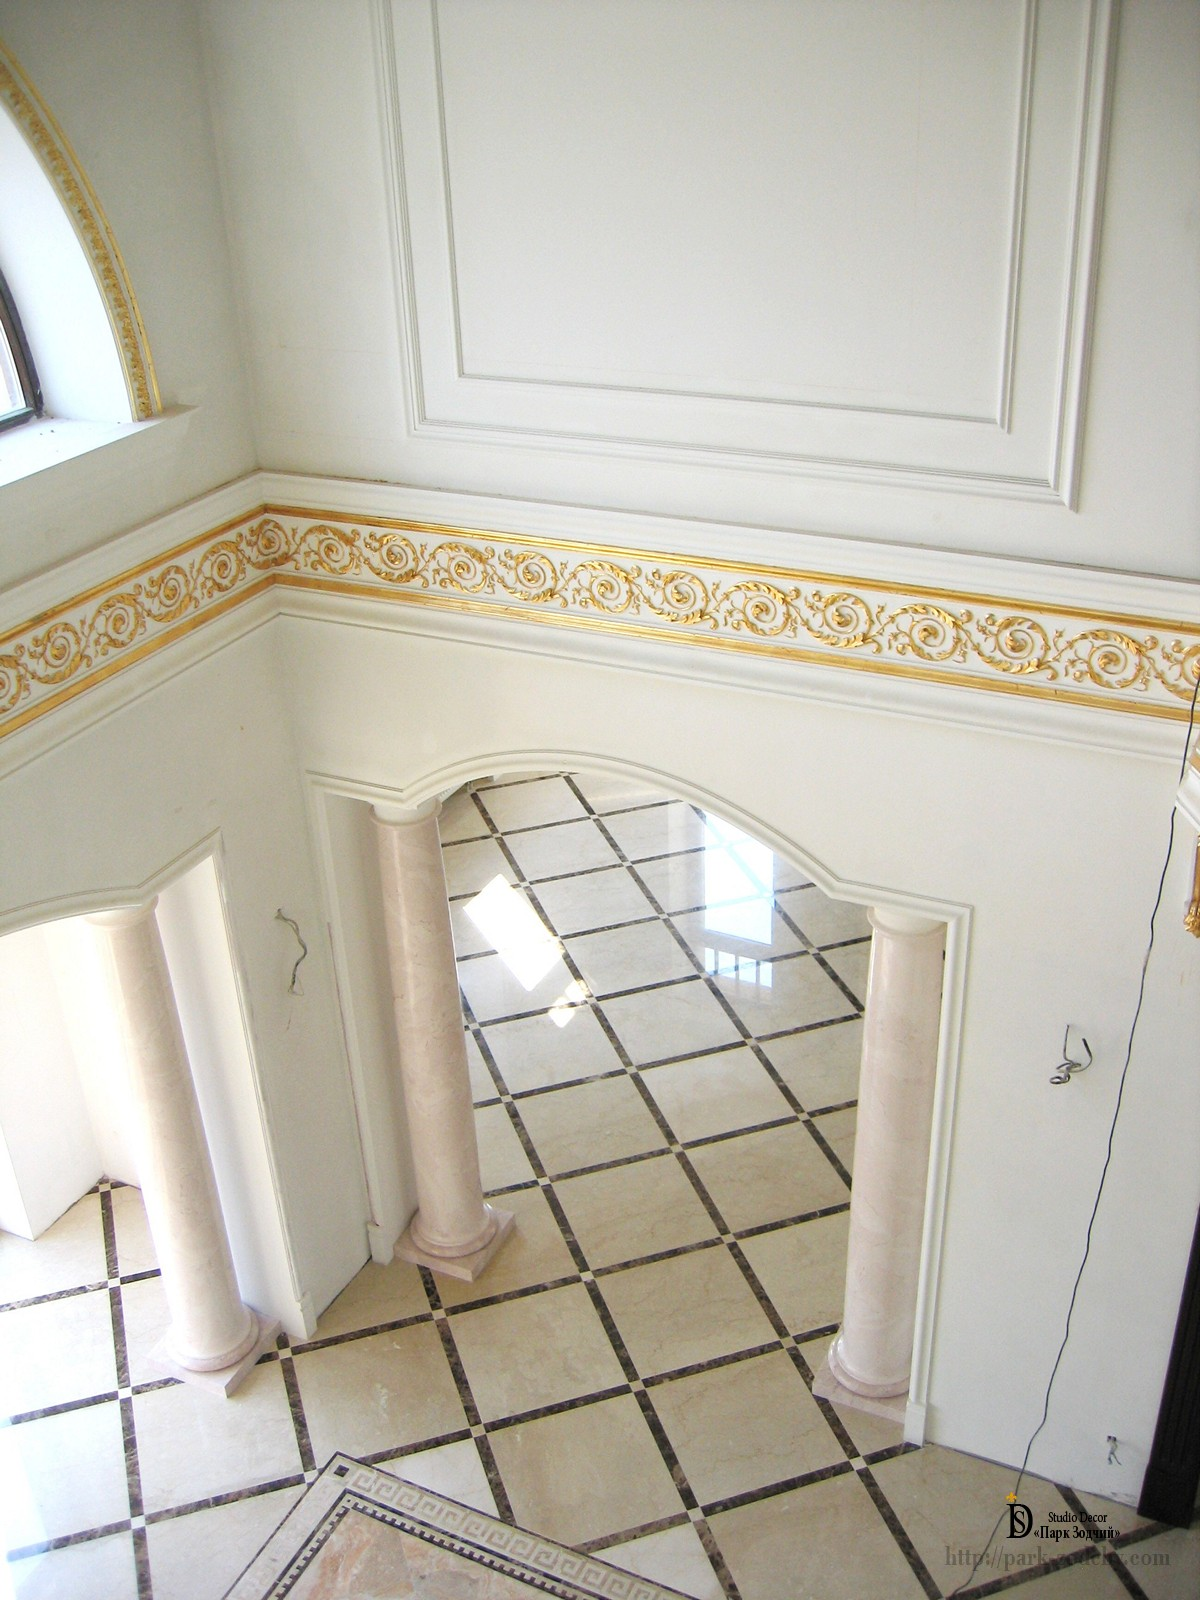 plaster moldings in the interior